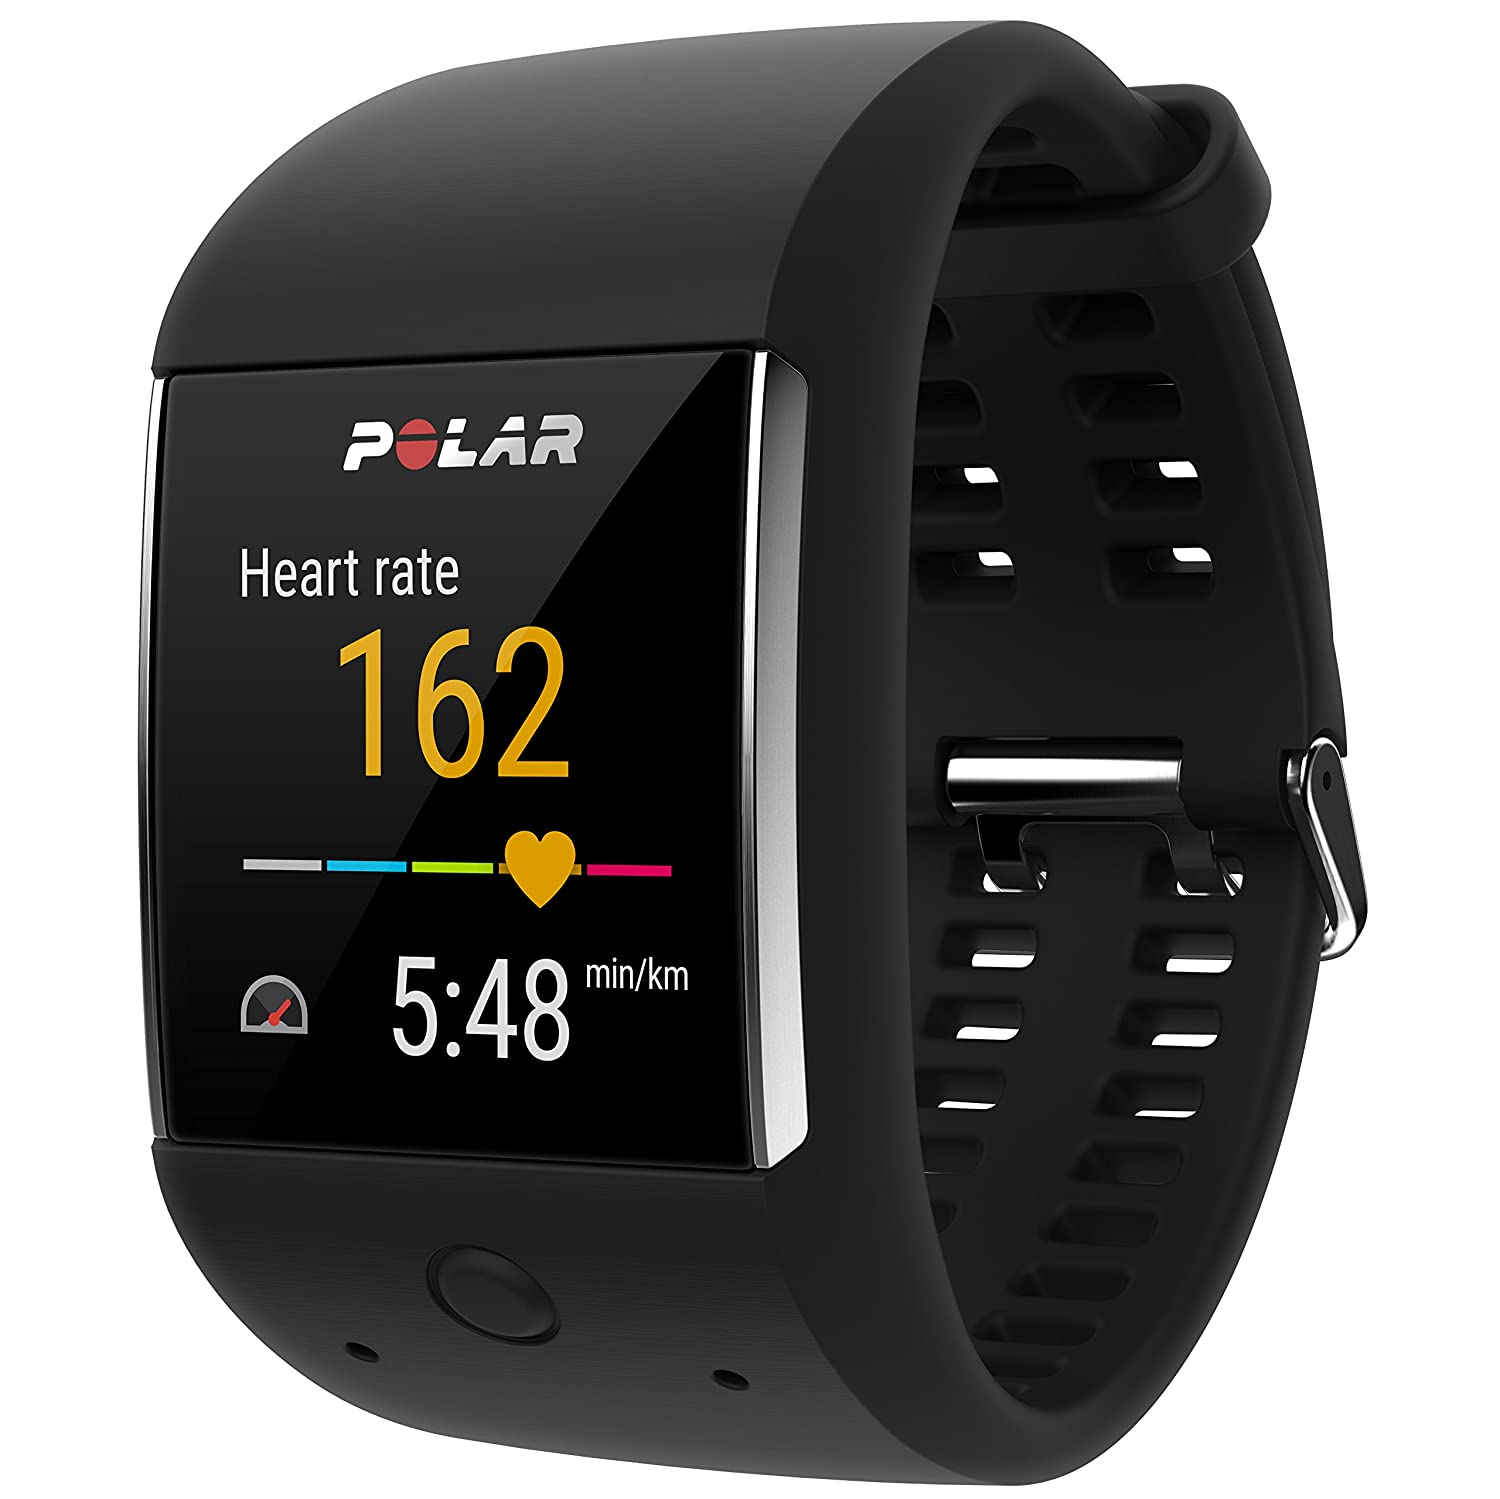 phone alert ibeat pre the product monitor only watches order black emergency mobile watch smart heart